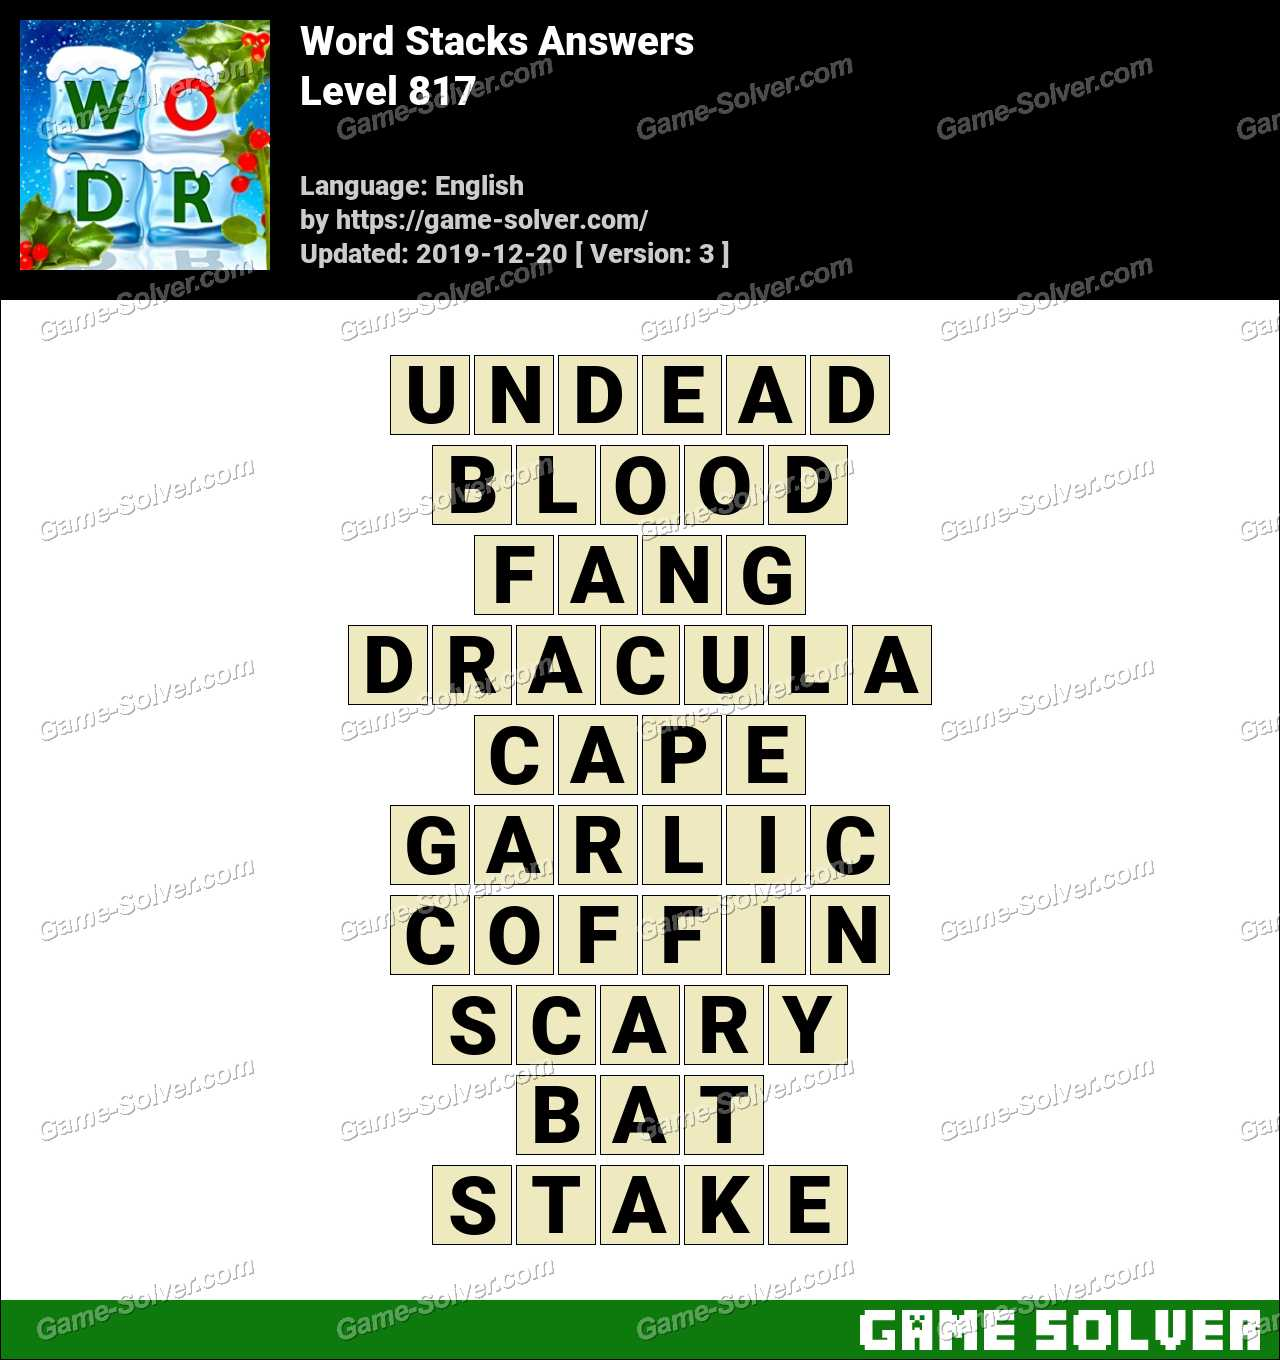 Word Stacks Level 817 Answers